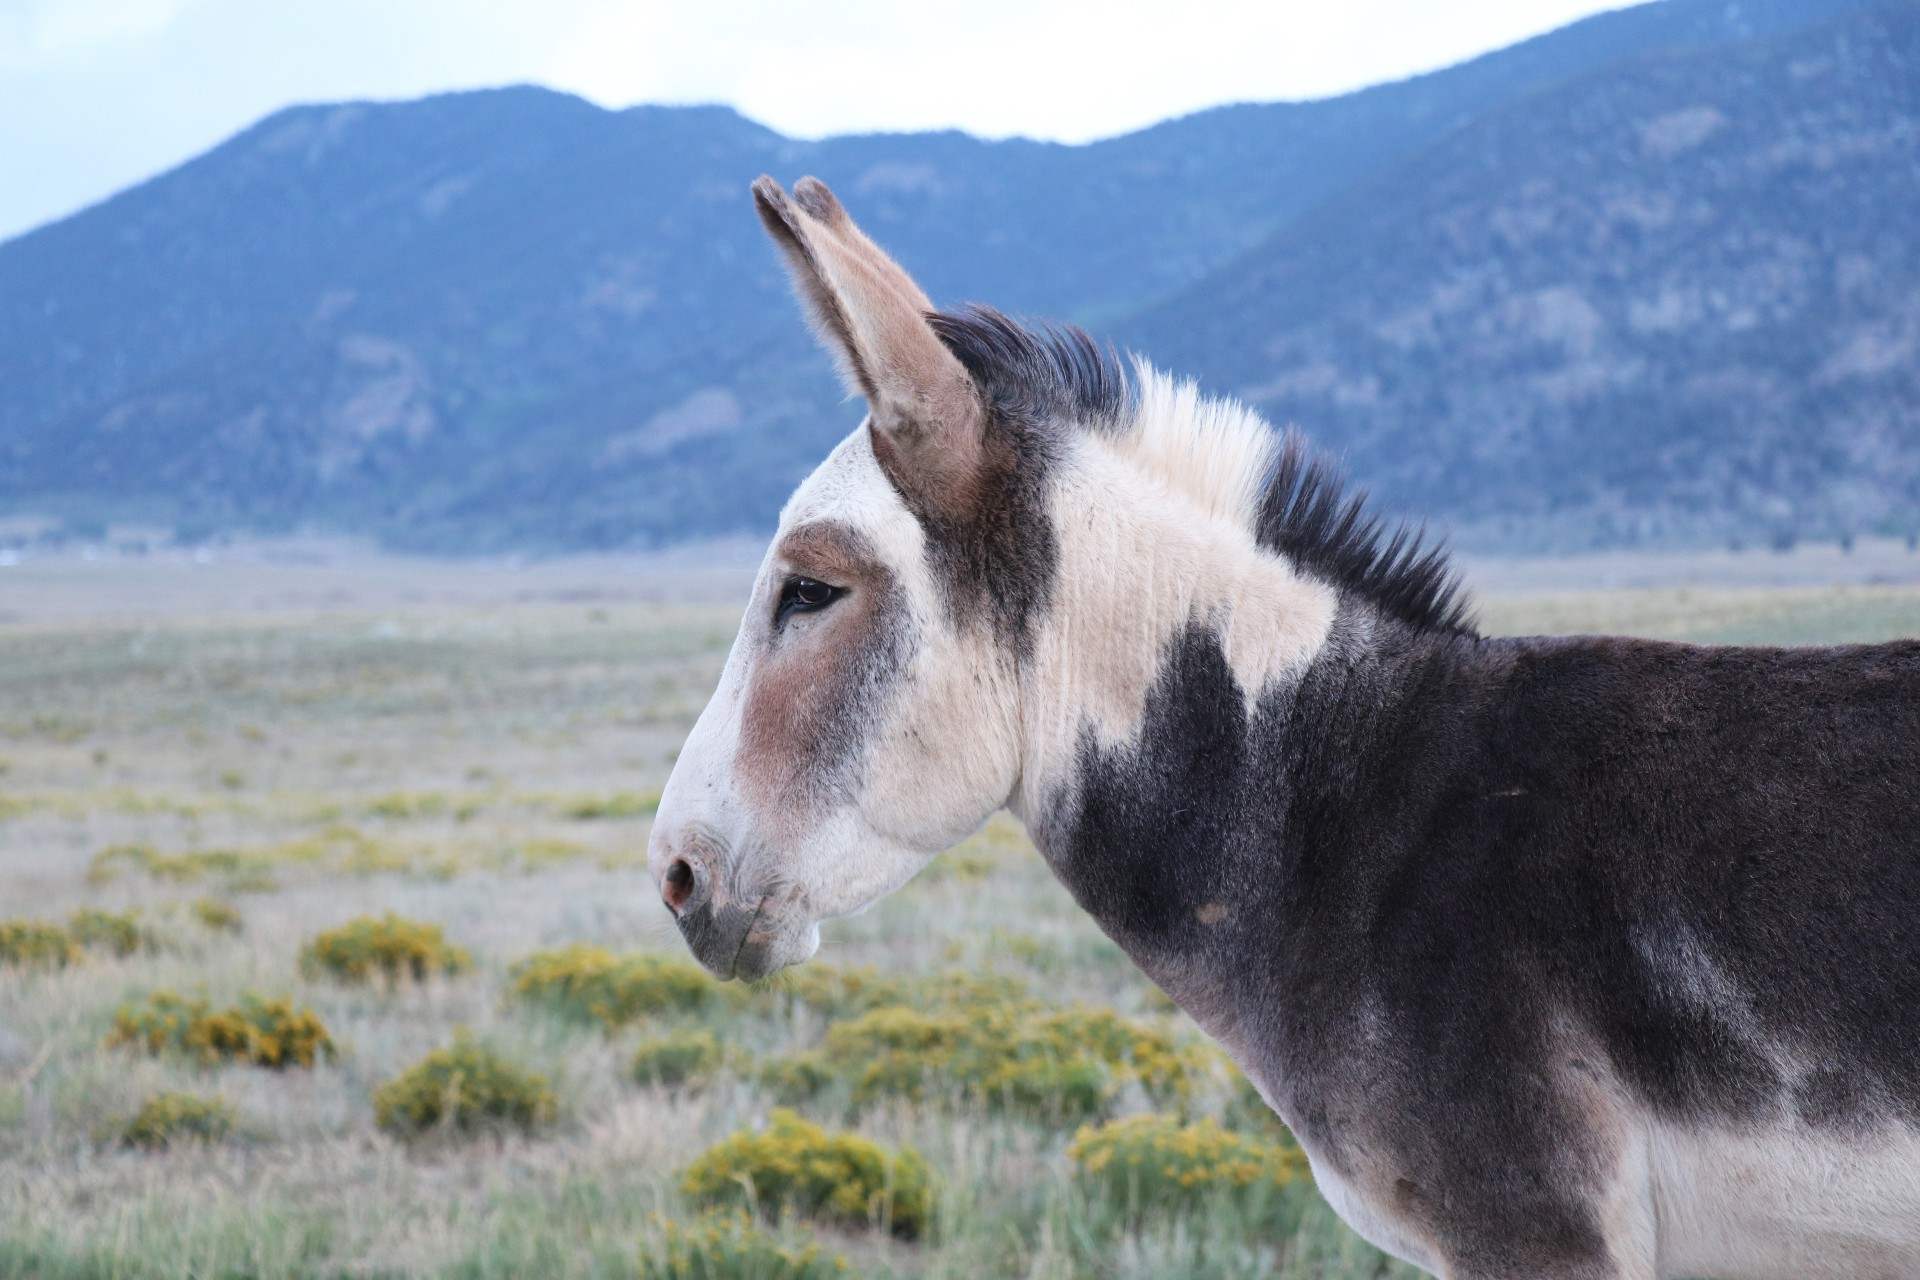 Wild Donkey Photographed By Sara Turbyfill At Eleven Mile State Park In Colorado.